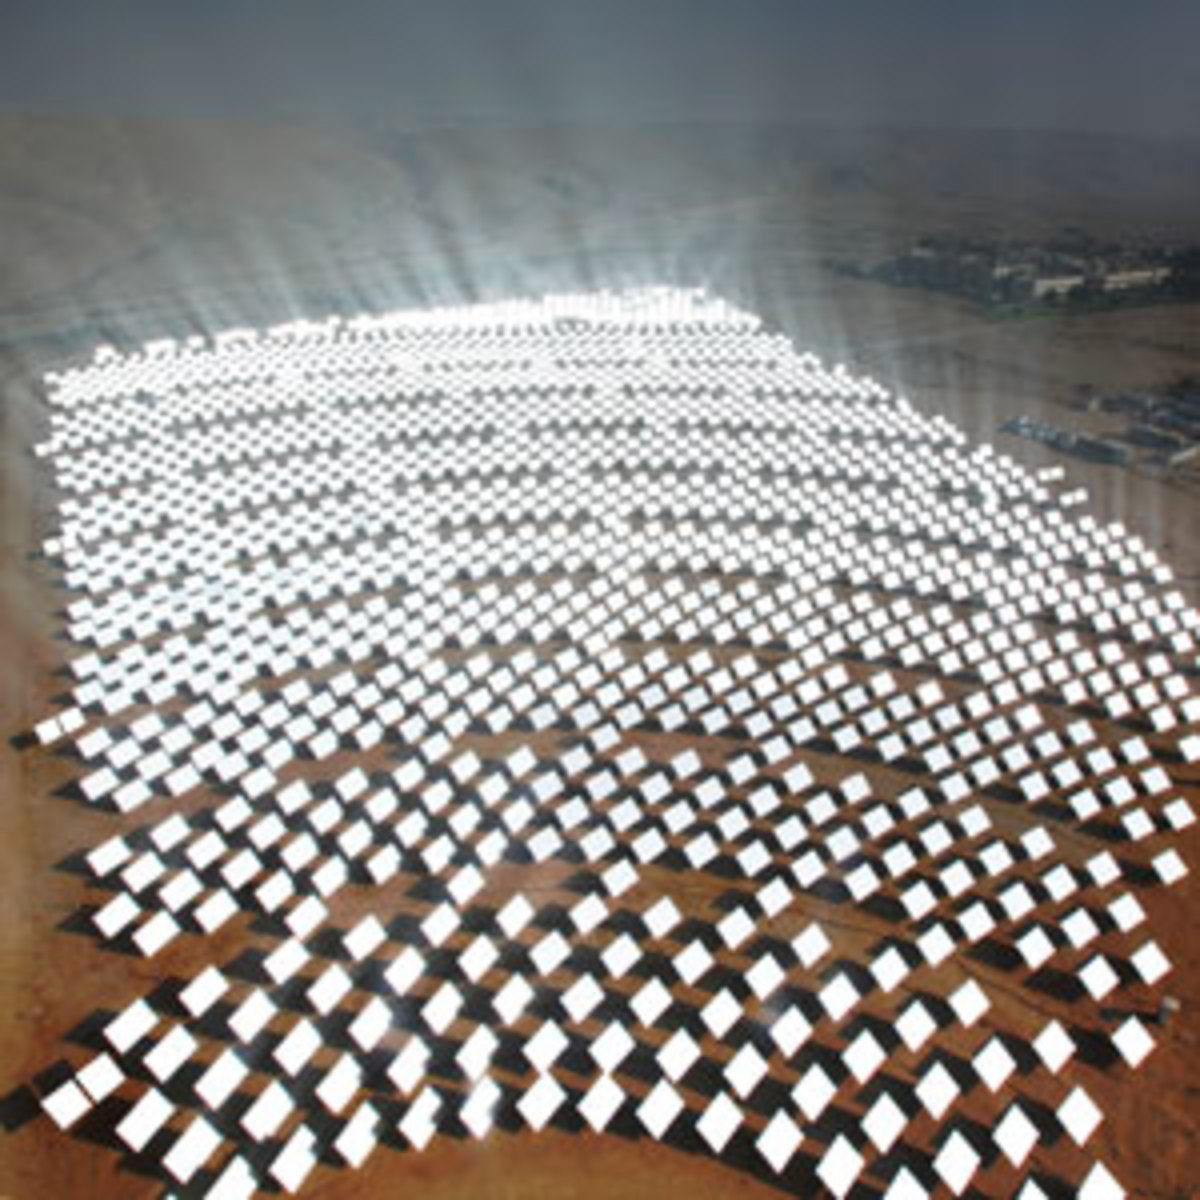 CLICK IMAGE TO READ THE STORYAre New Solar Power Projects Anti-Environmental?: Big money, big energy and big environmentalism join forces to support big solar energy projects on federal land in the Southwest. But could these green projects actually be anti-environmental boondoggles in the making?